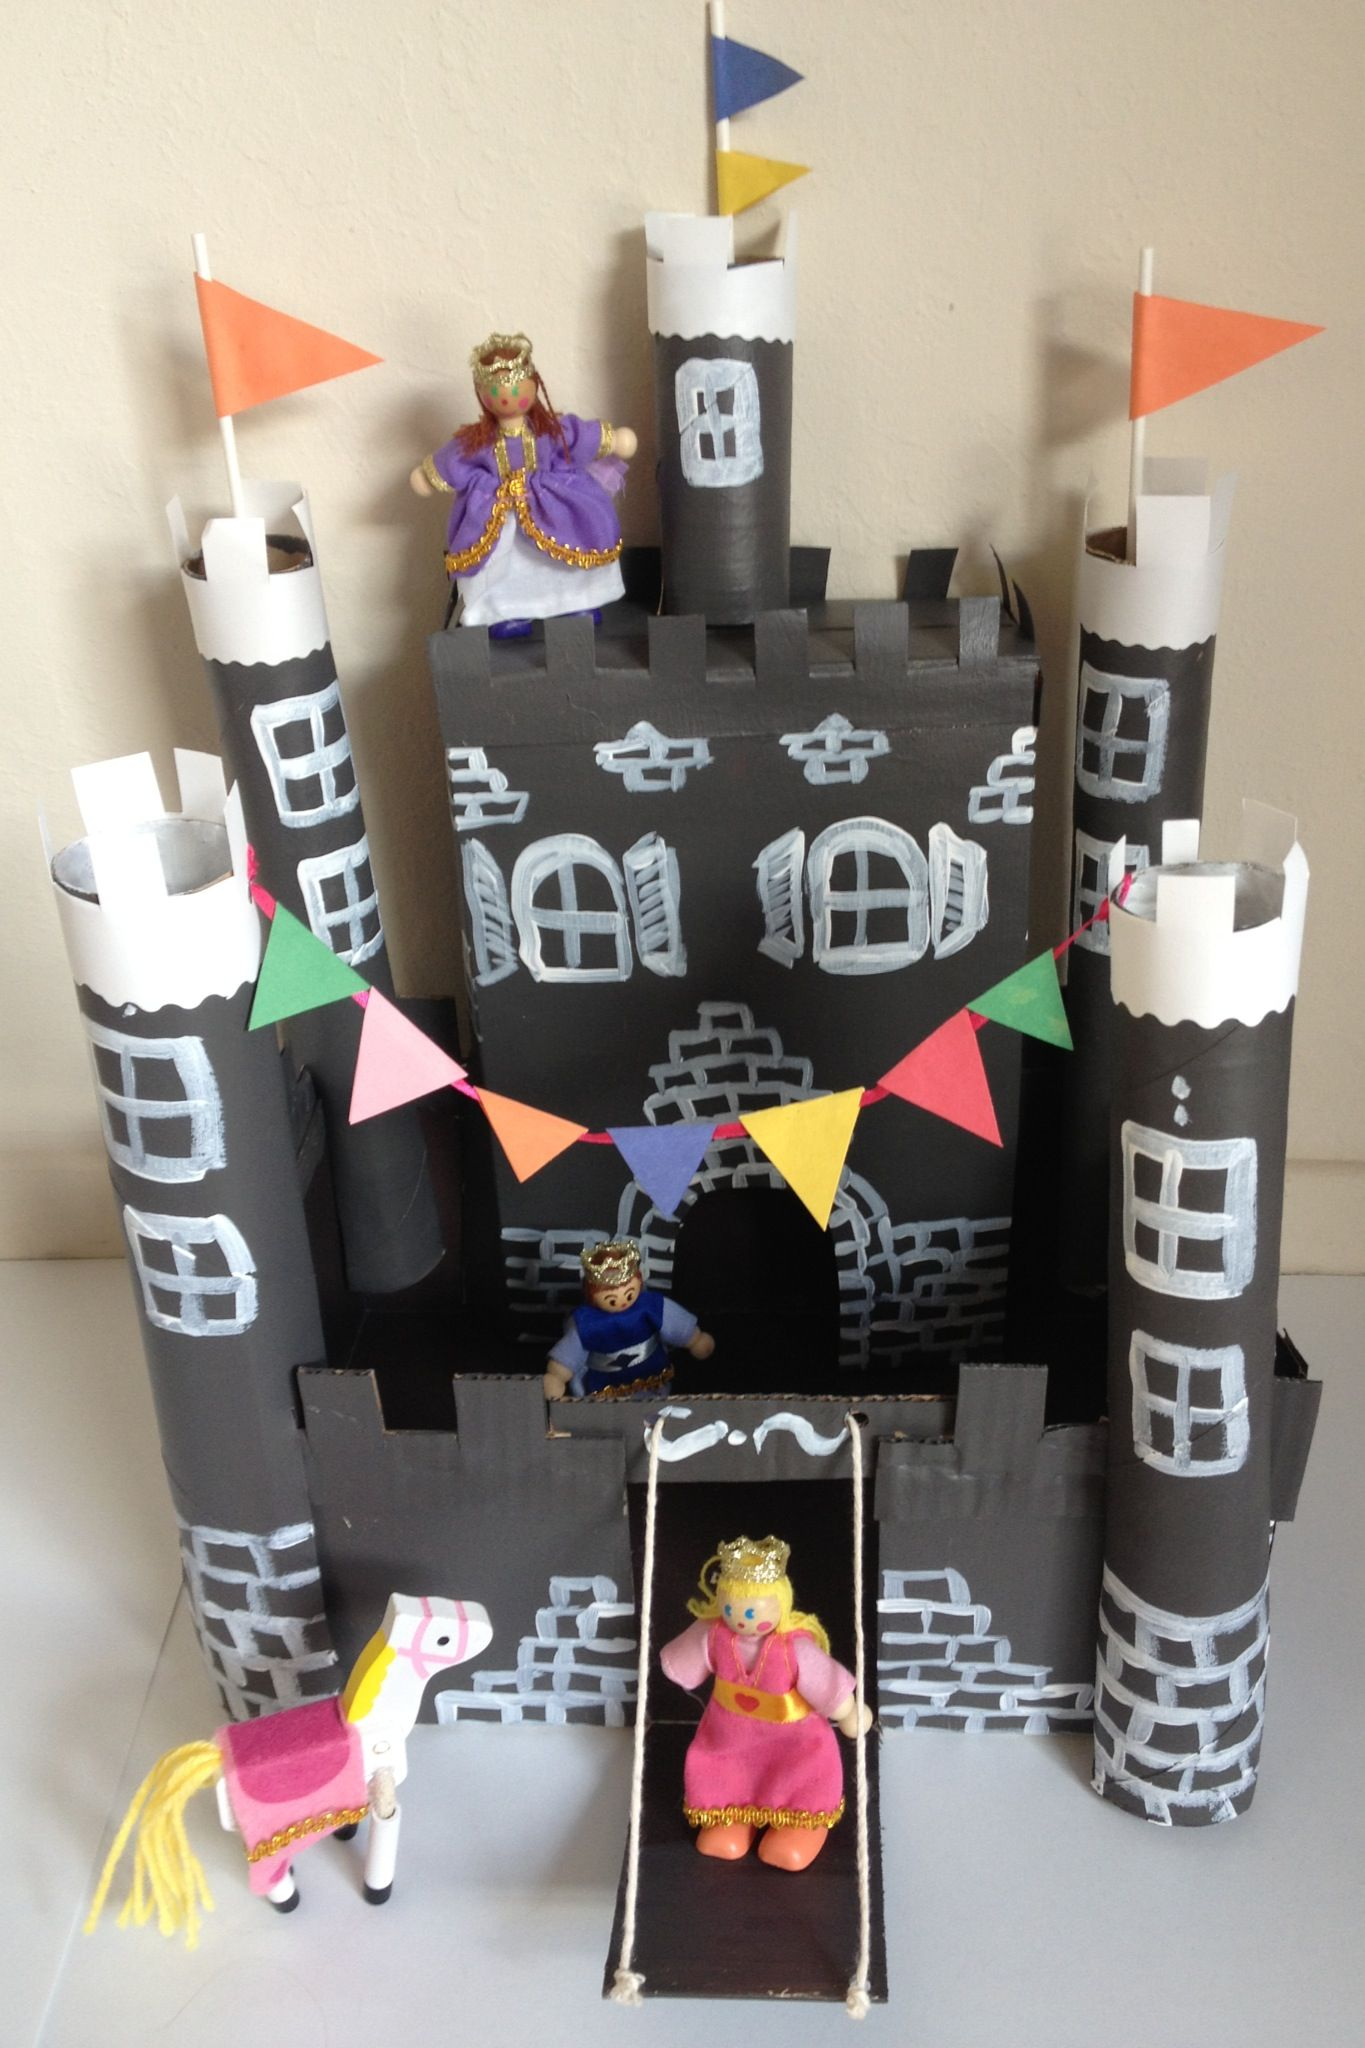 Cardboard Castle Craft Made From Stuff Around The House